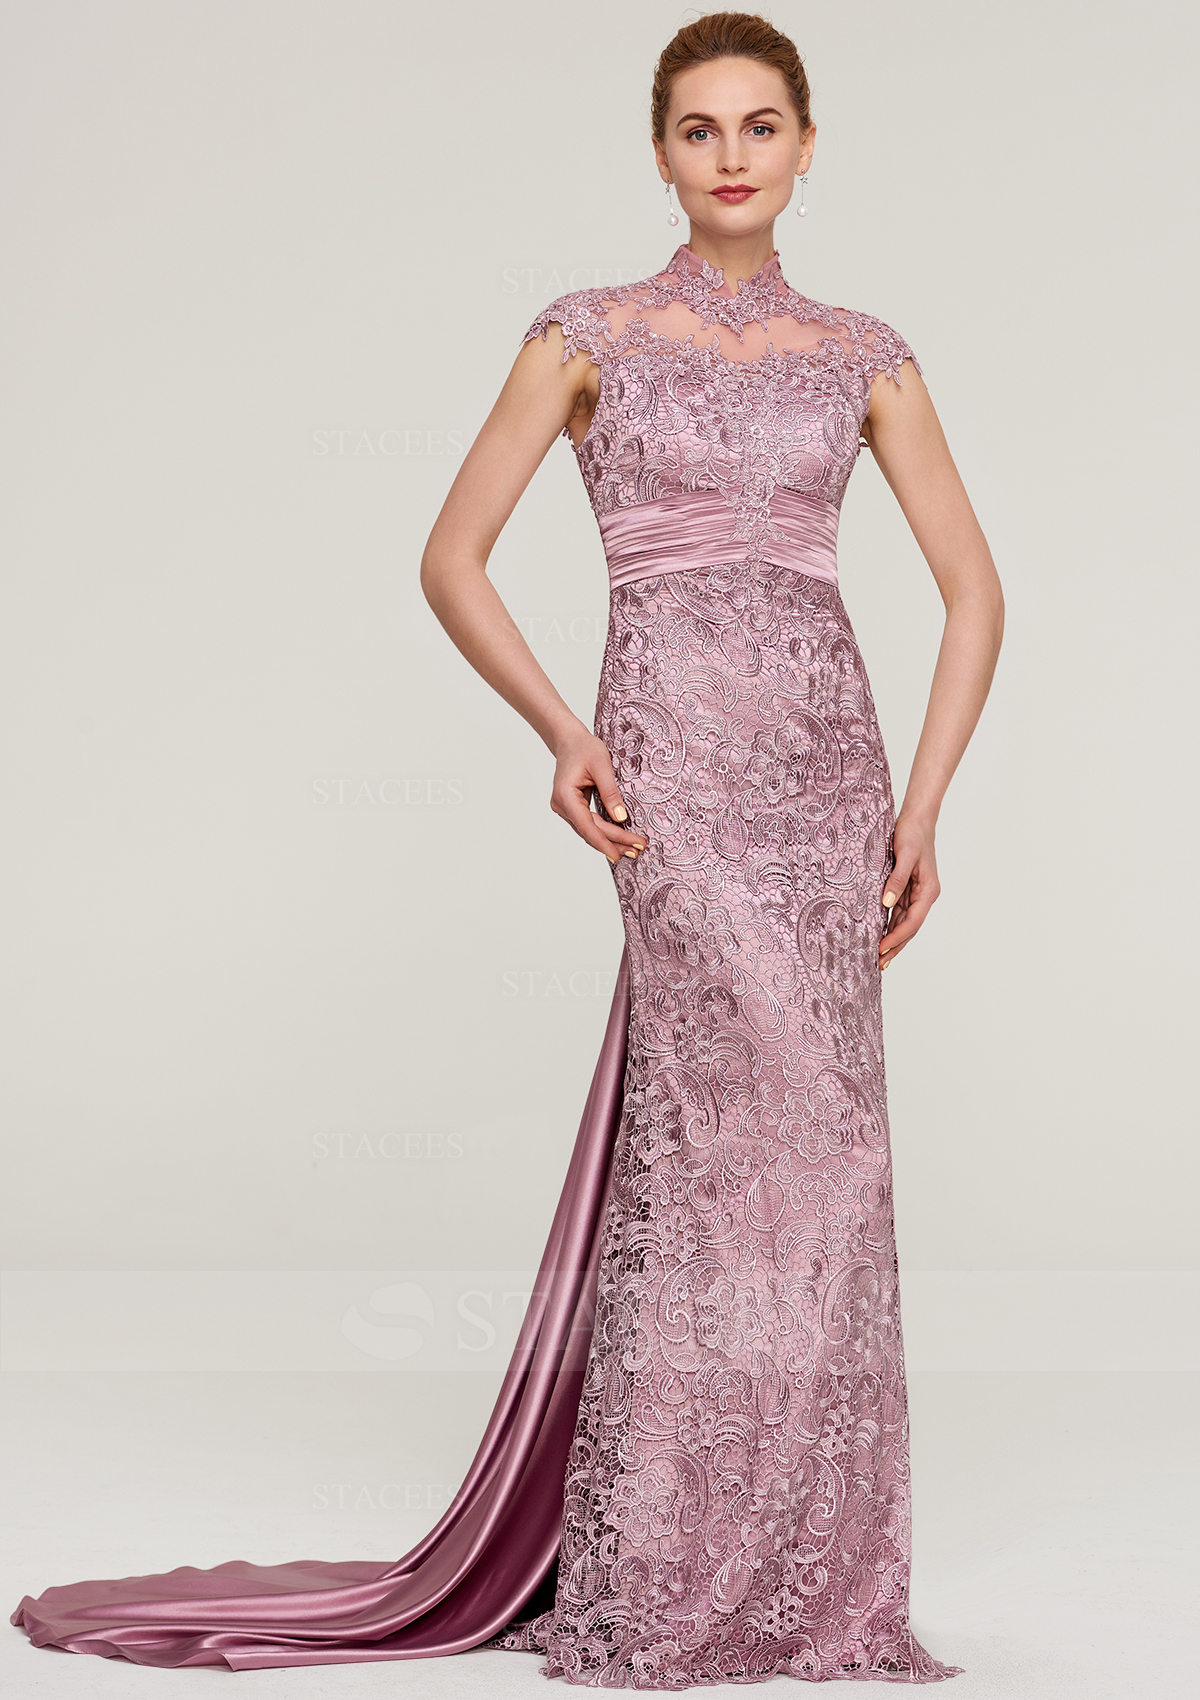 a74af43b21 Sheath Column High-Neck Sleeveless Court Train Lace Mother of the Bride  Dress With Pleated - Mother of the Bride Dresses S18096M - at Stacees.co.uk